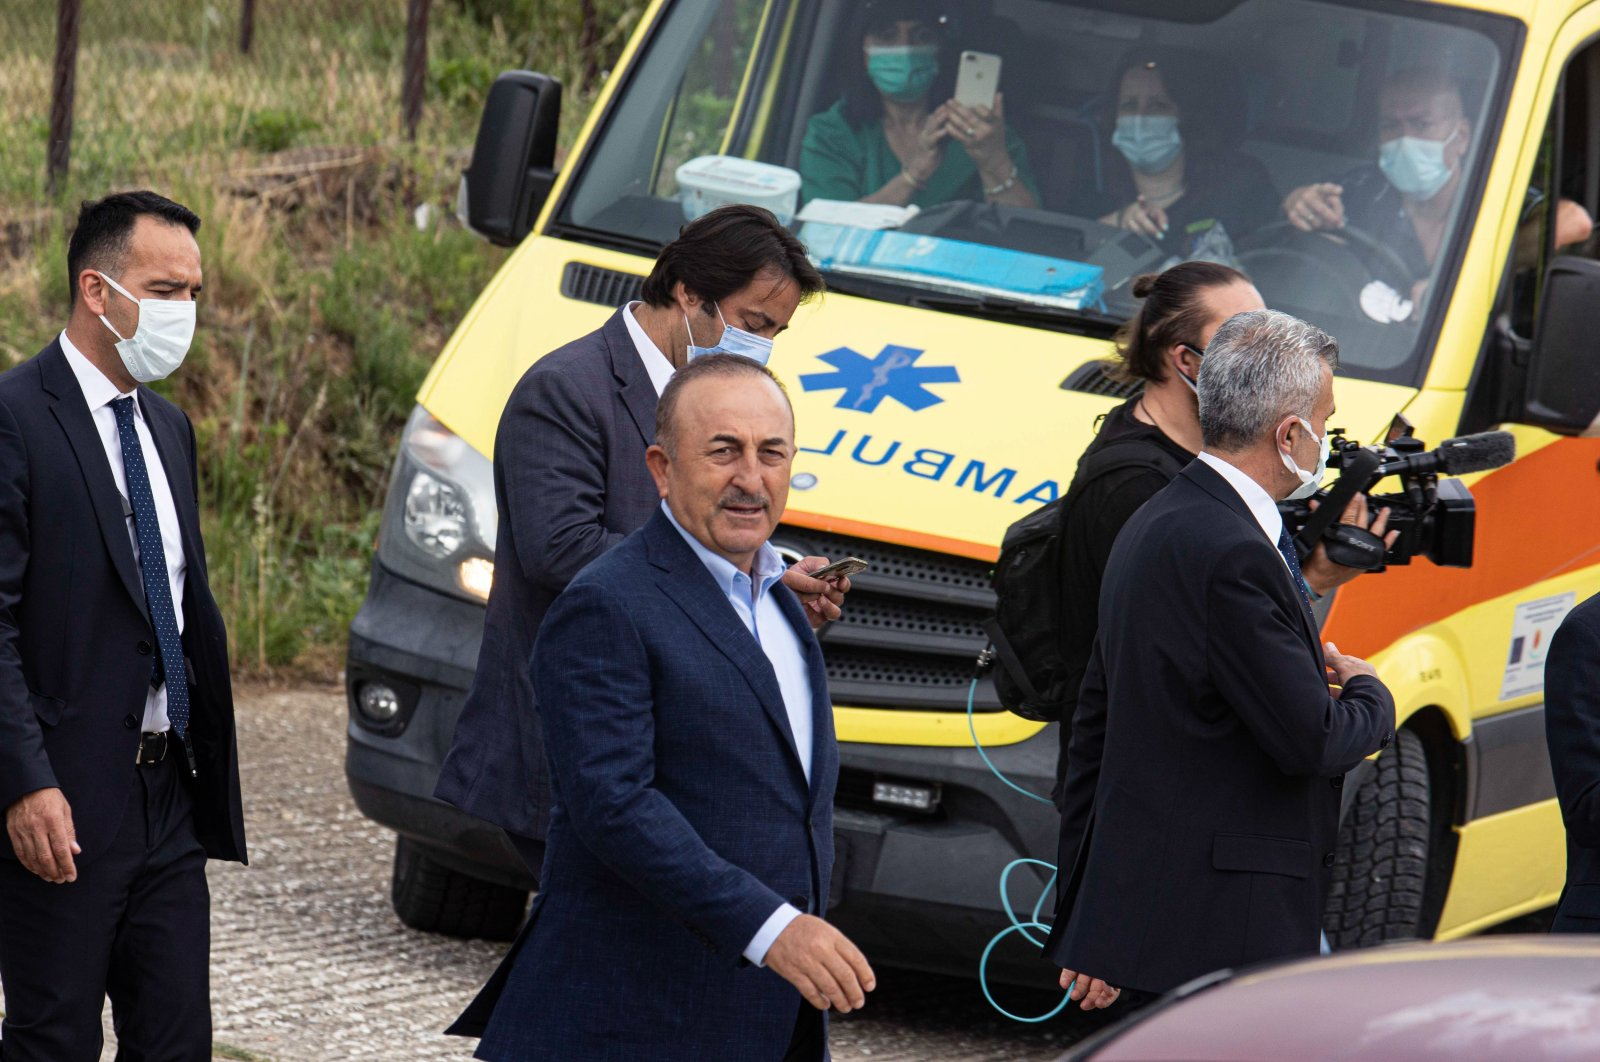 Foreign Minister Mevlüt Çavuşoğlu in Komotini (Gümülcine) as a private visit during his official visit in Greece, May 30, 2021. (Getty Images)